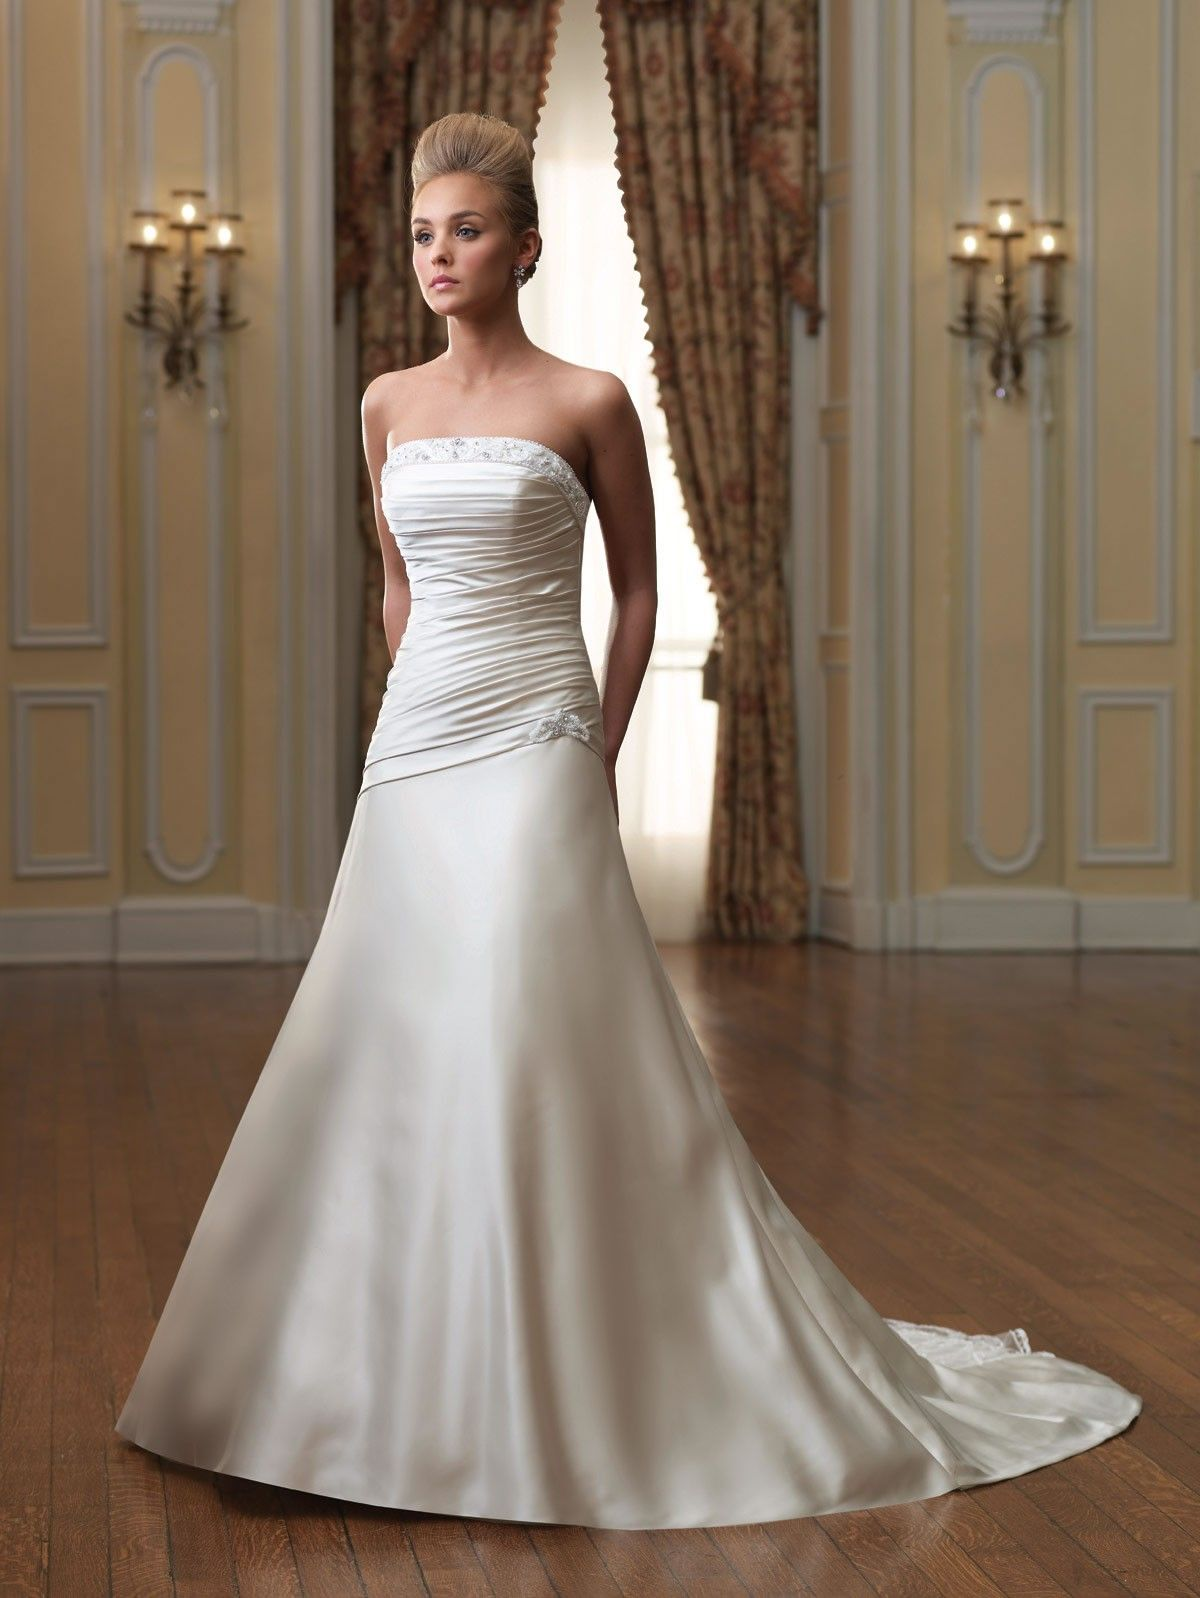 Strapless Wedding Dresses With A Line | Dresscab | Strapless ...